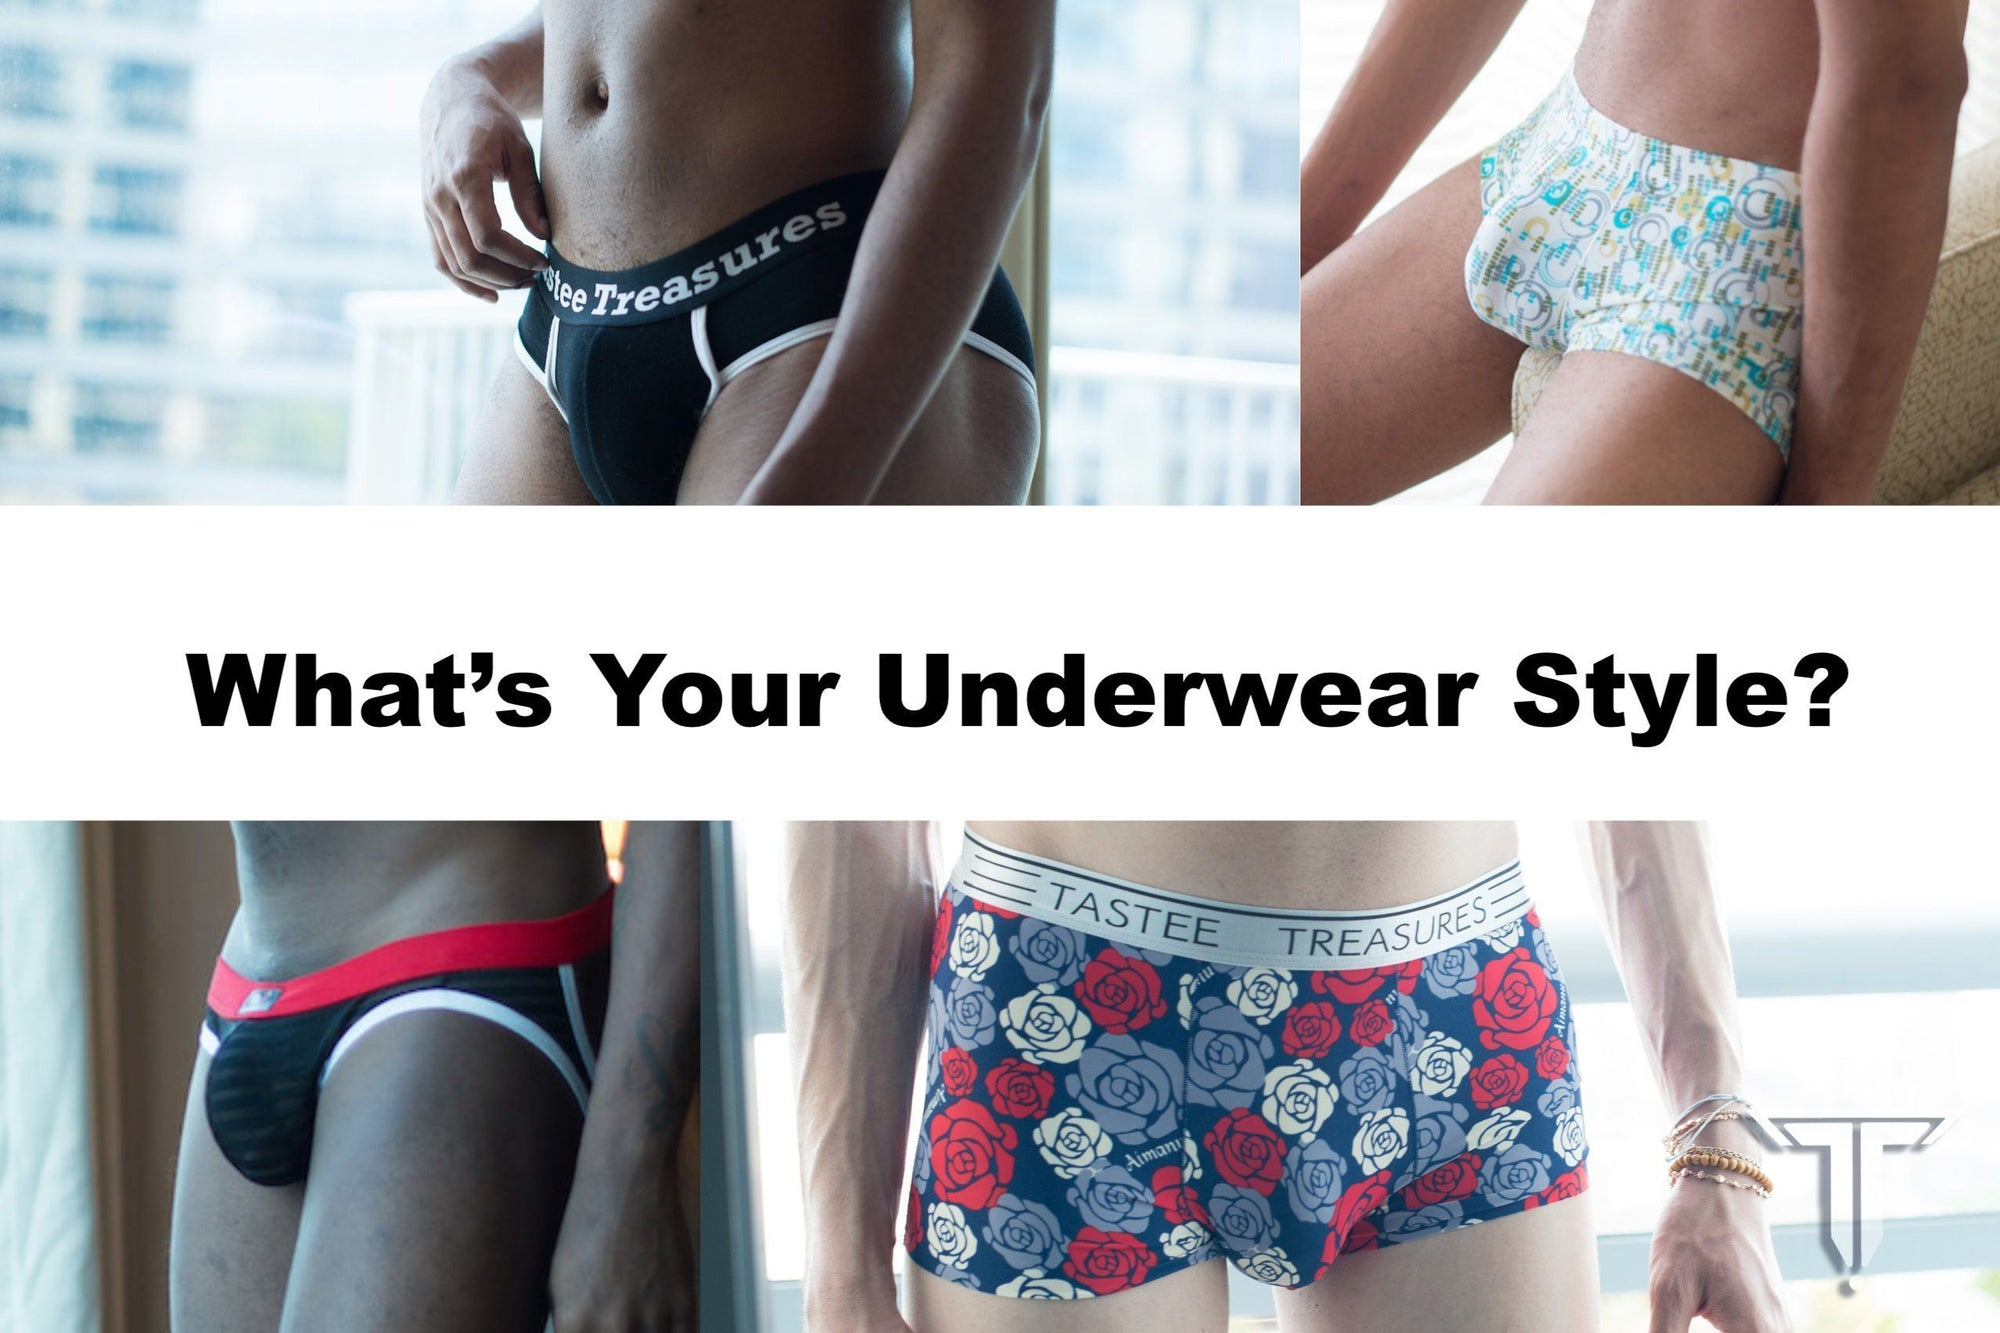 Underwear Style Guide: Everything You Need to Know About What Goes Underneath